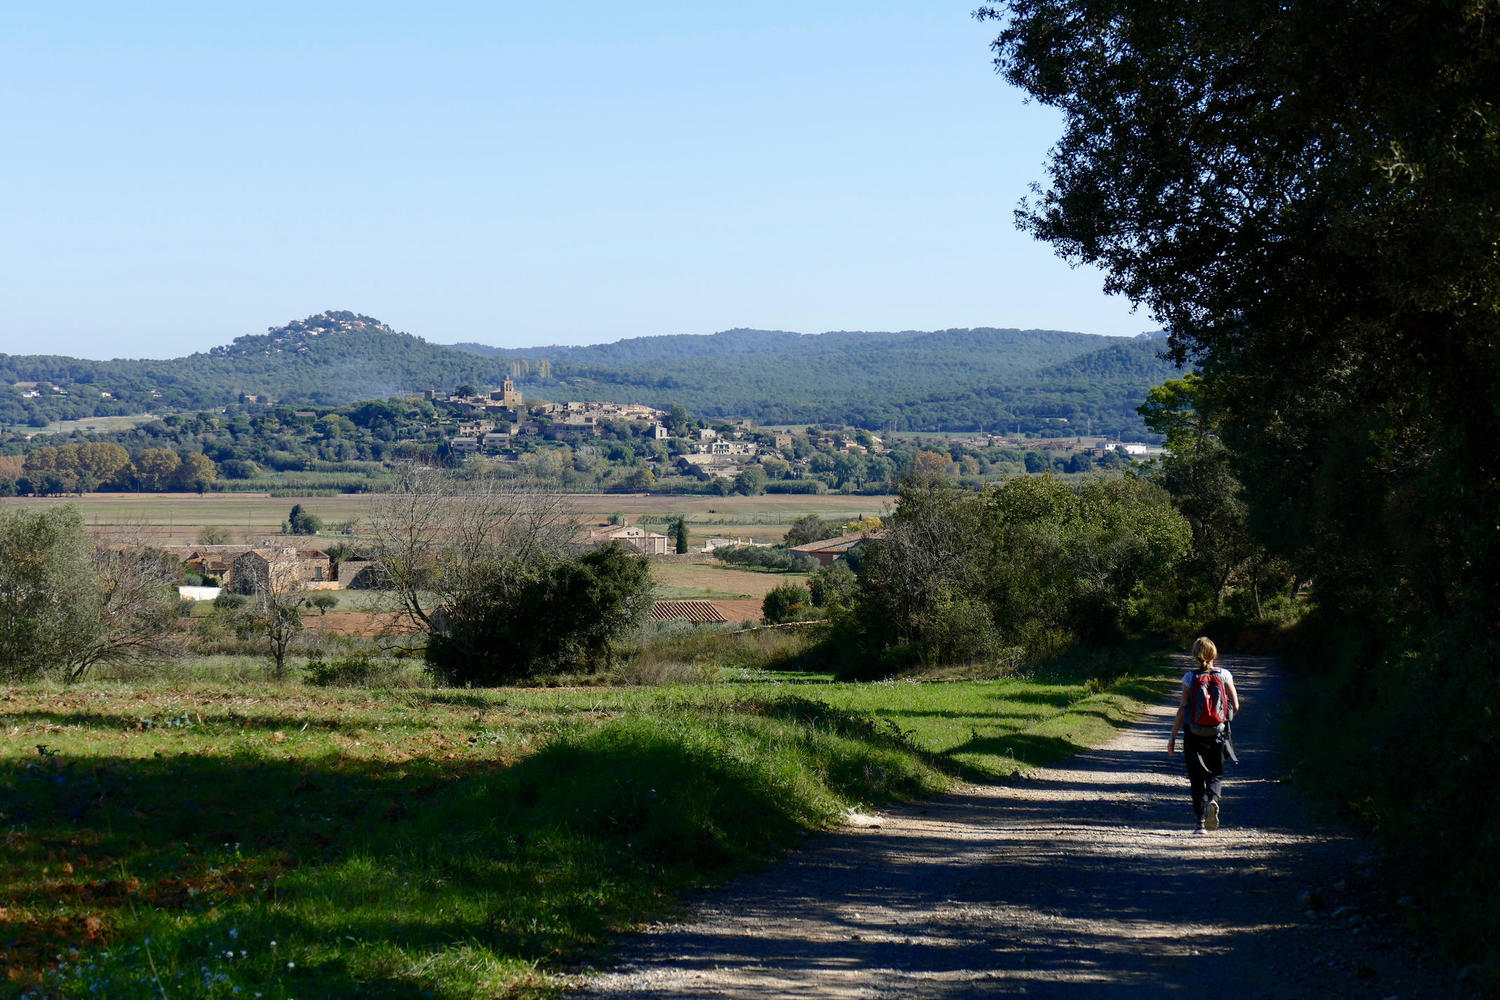 Walking towards Pals in the Empurda region of Catalonia.